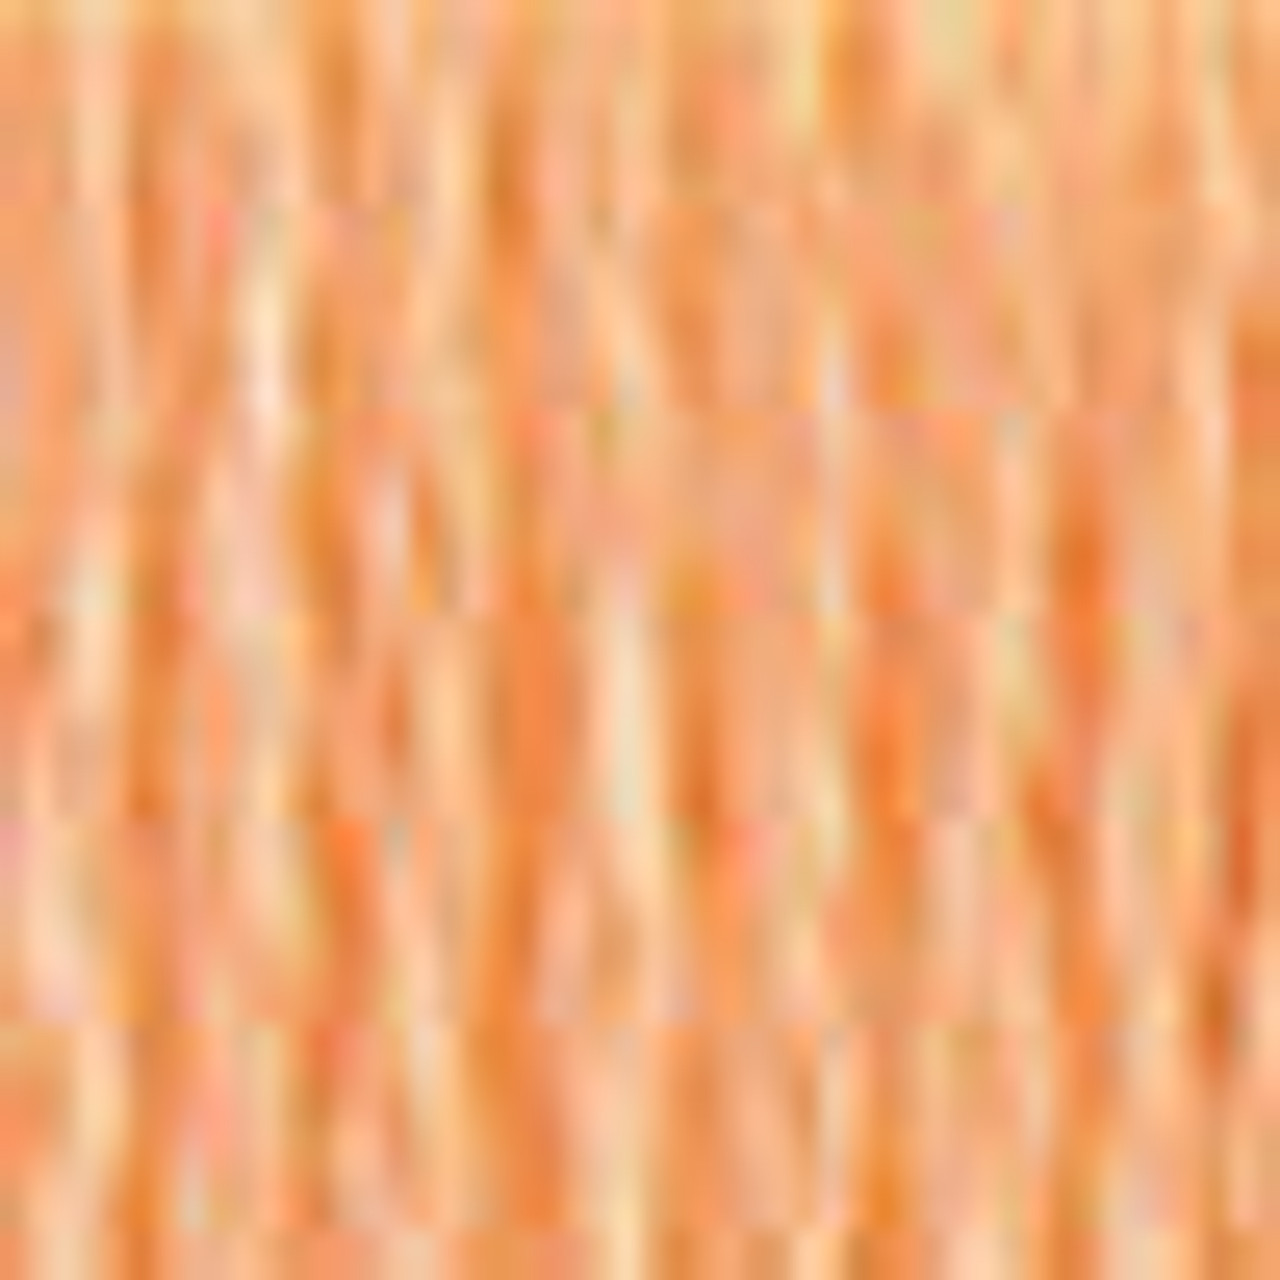 DMC # 3825 Pale Pumpkin Floss / Thread